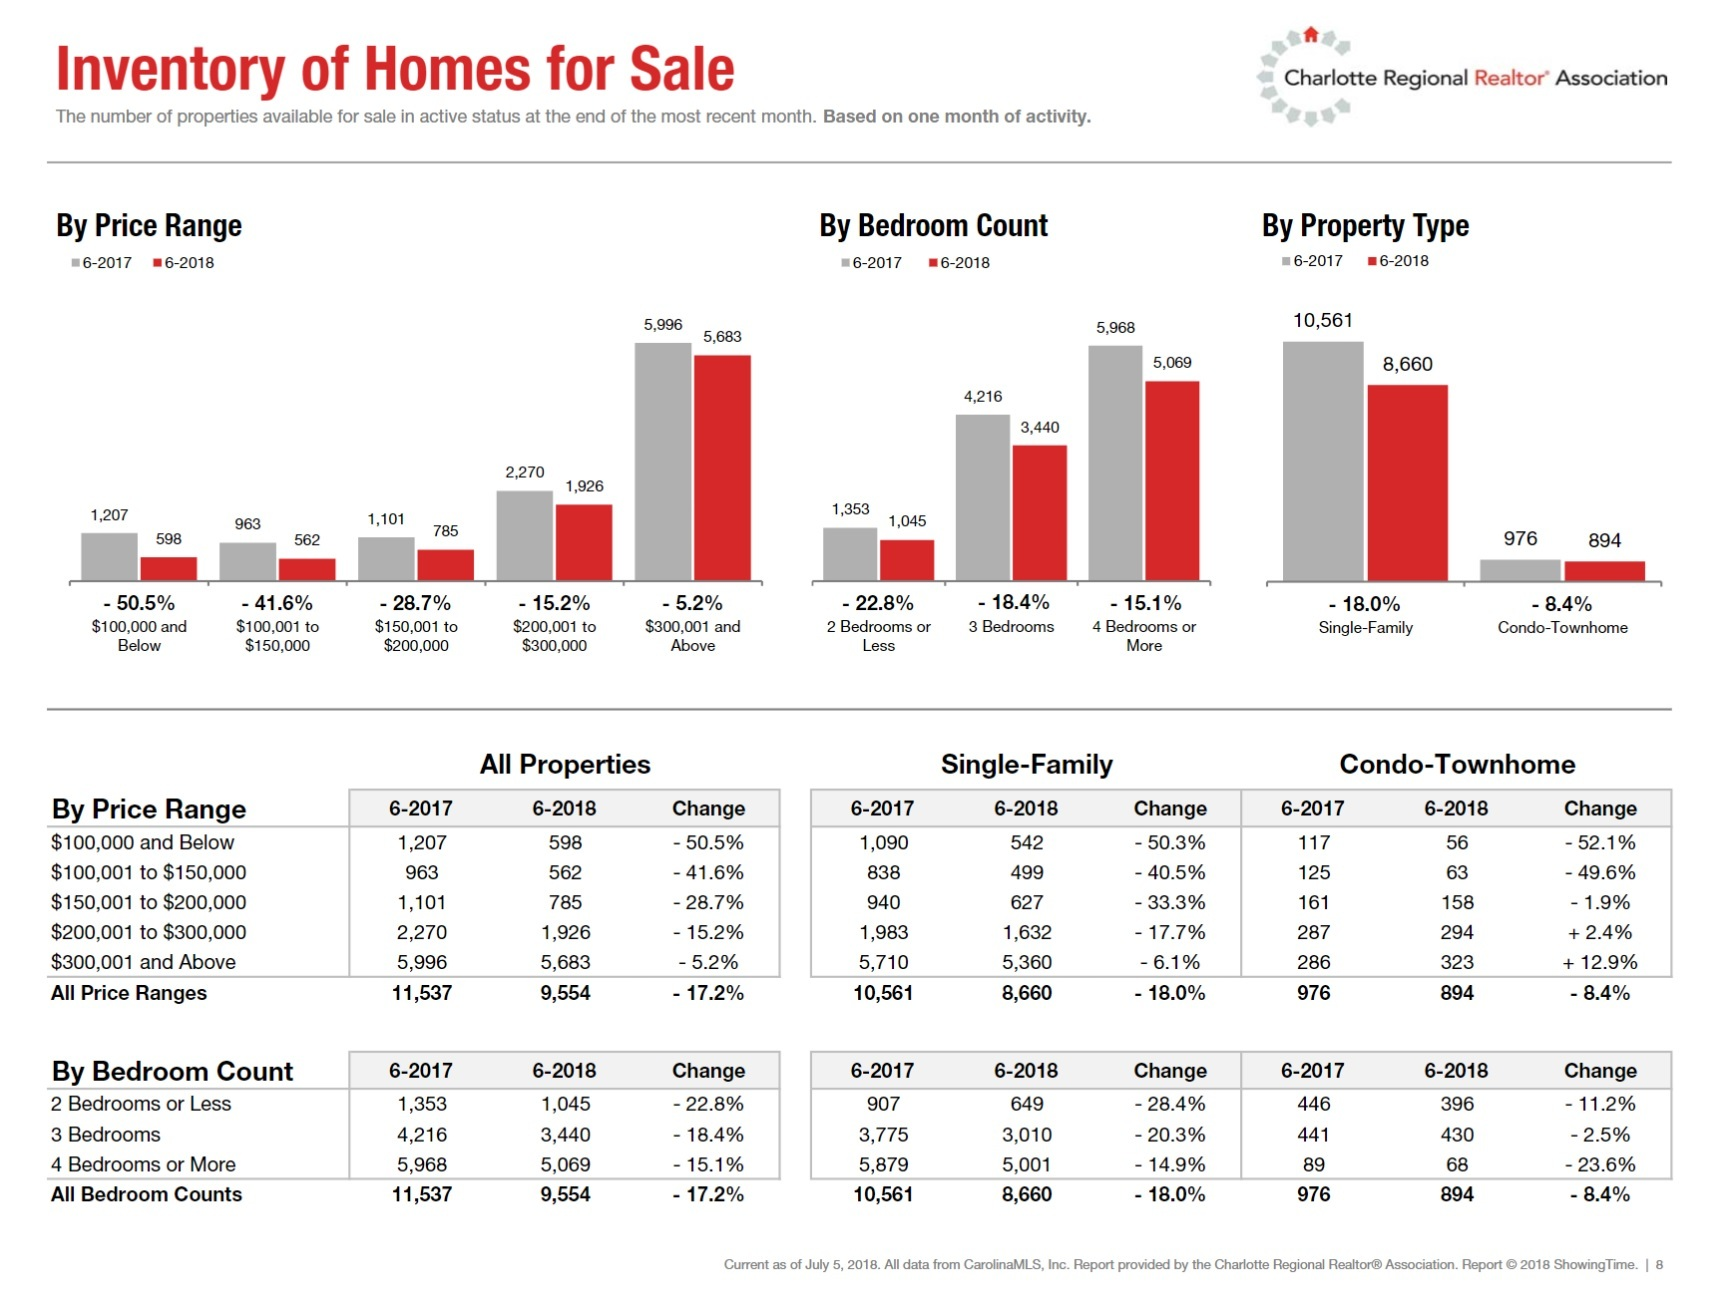 Inventory of Homes for Sale In Charlotte Region June 2018